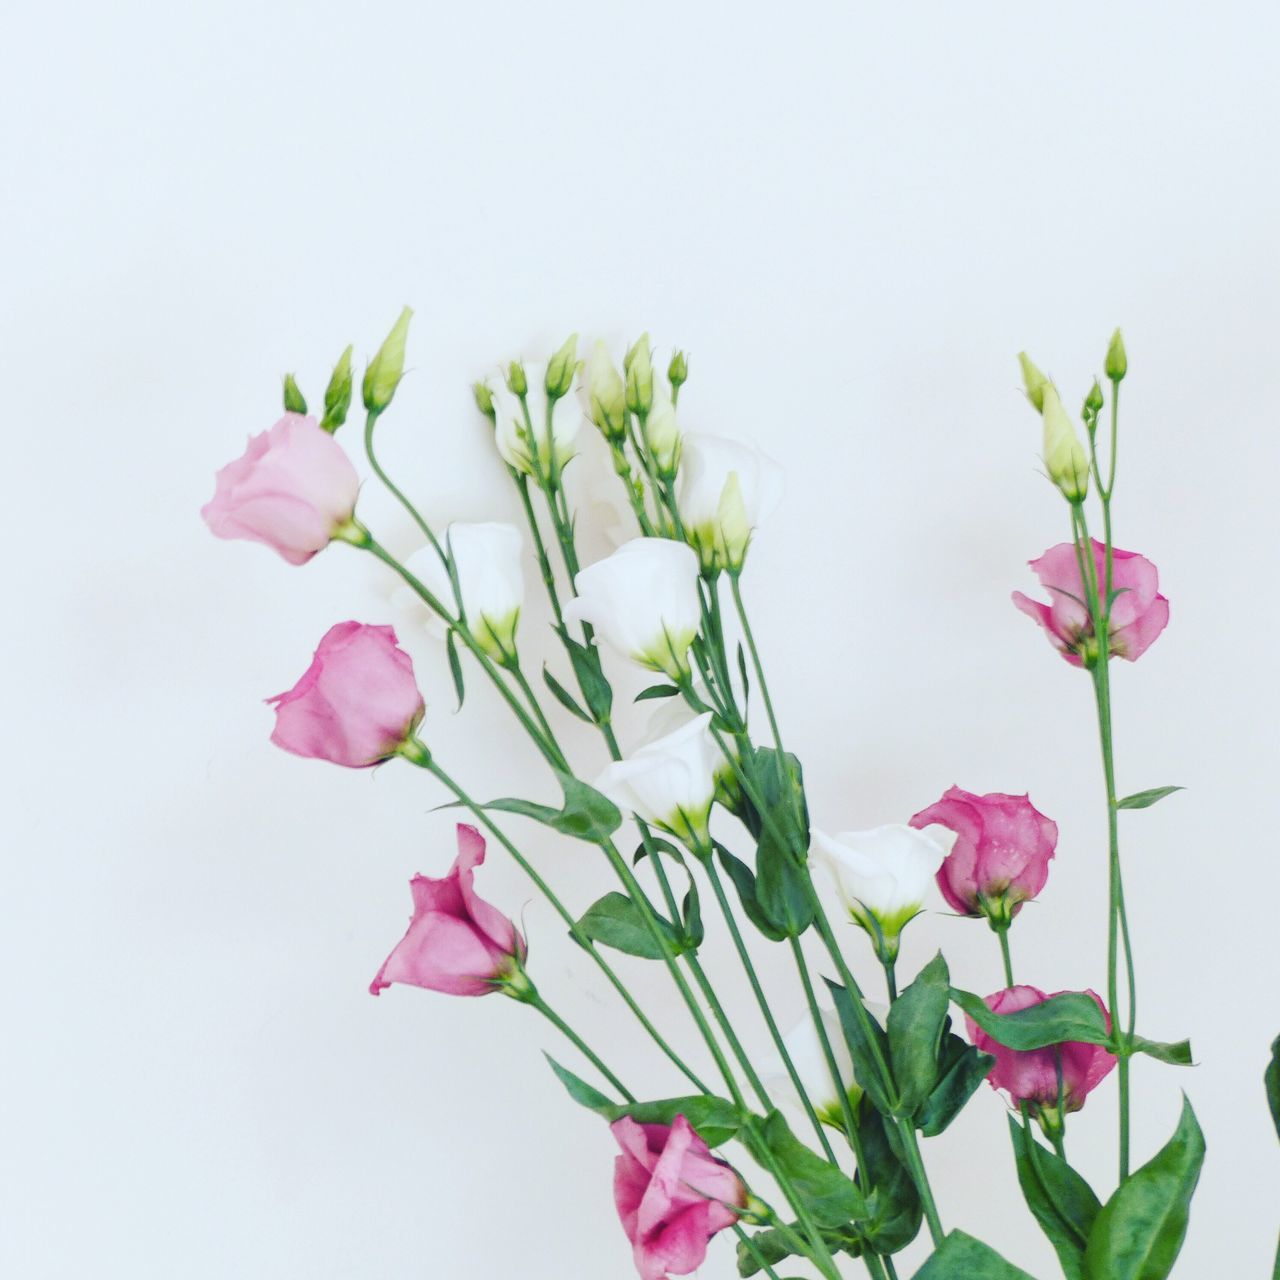 Close-Up Of Fresh Pink Flowers Against White Background